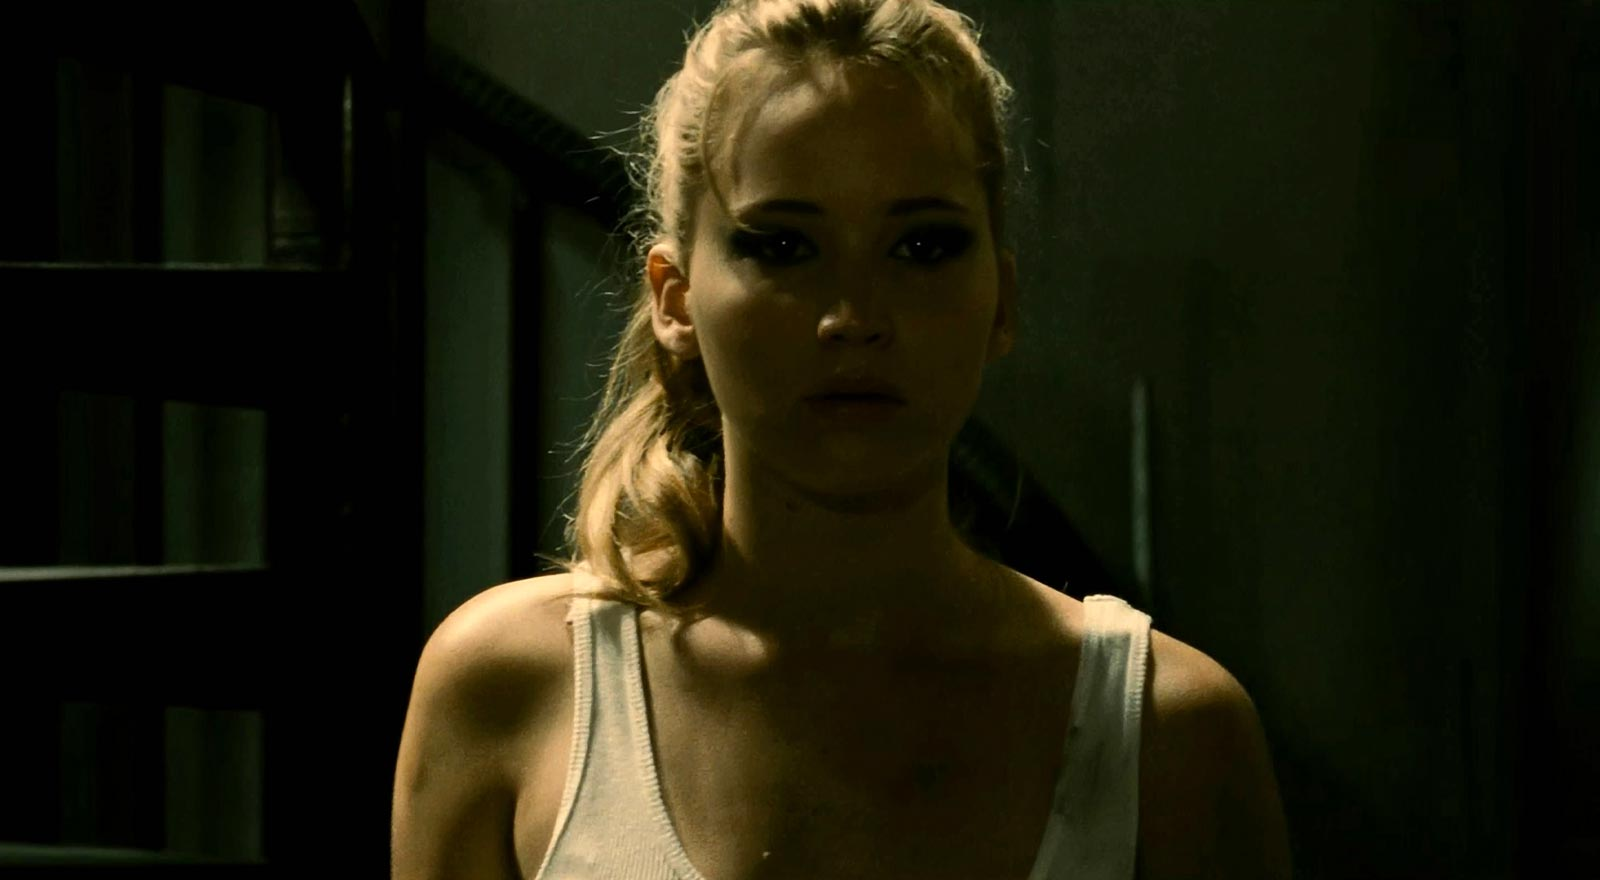 Jennifer Lawrence investigates strange goings-on next door in The House at the End of the Street (2012)